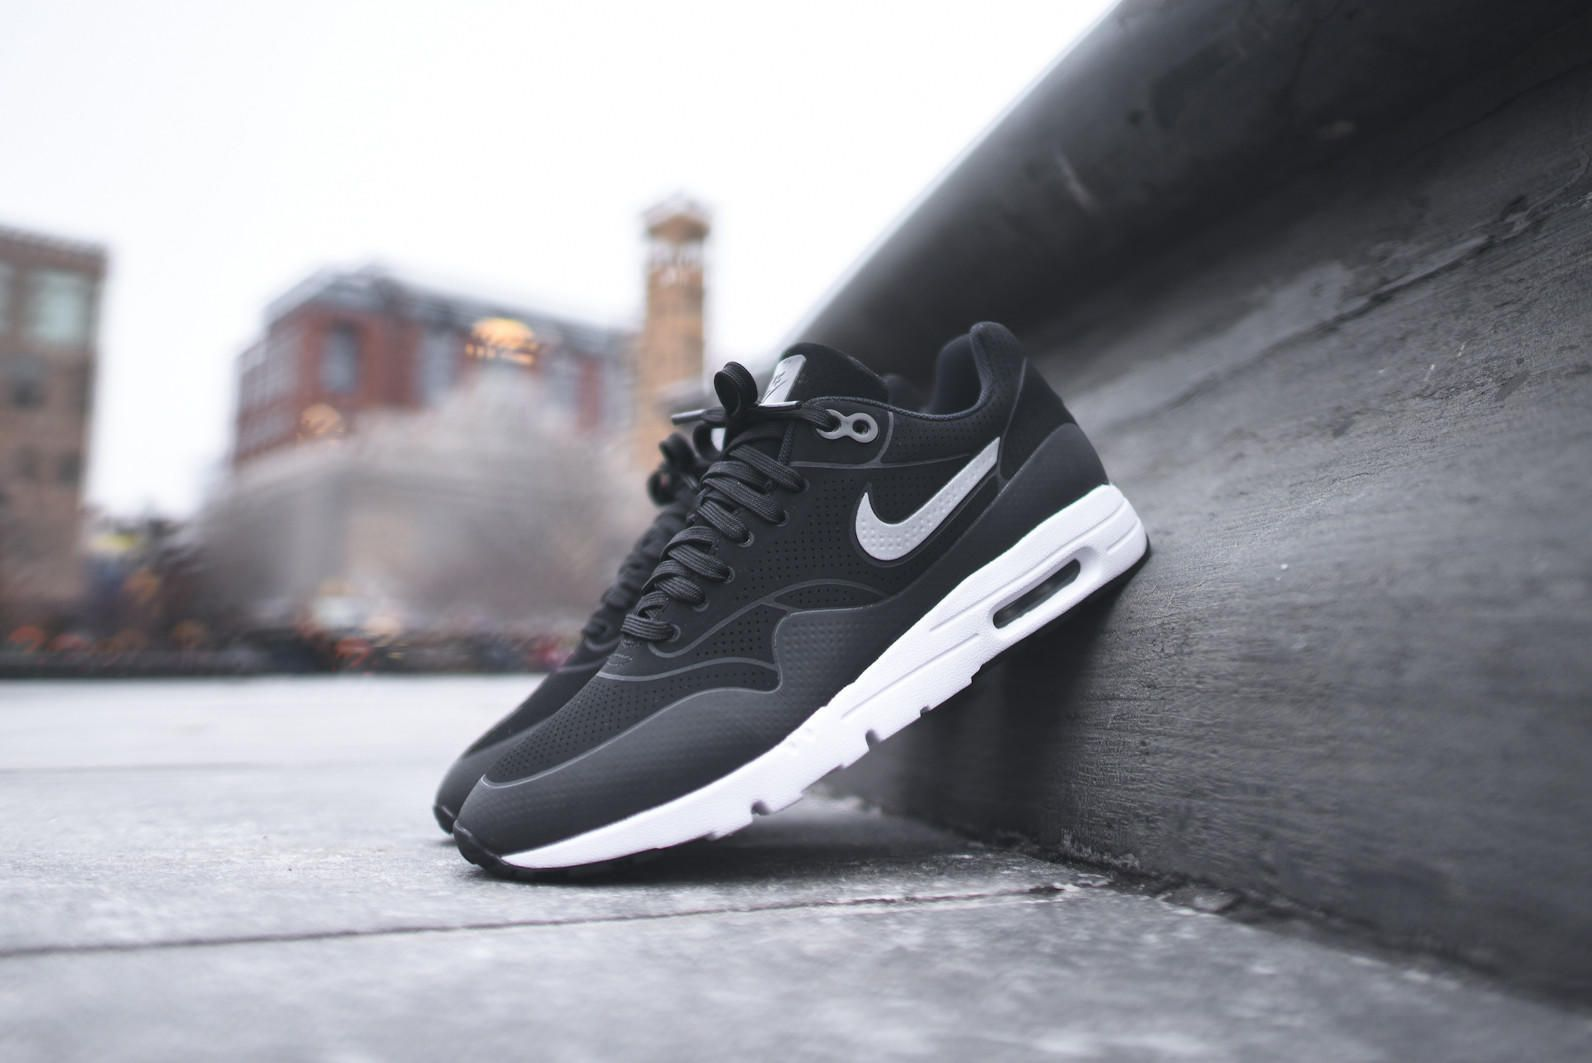 quality design a2269 fab8f NIKE WMNS Air Max 1 Ultra Moire - Black   Metallic Silver